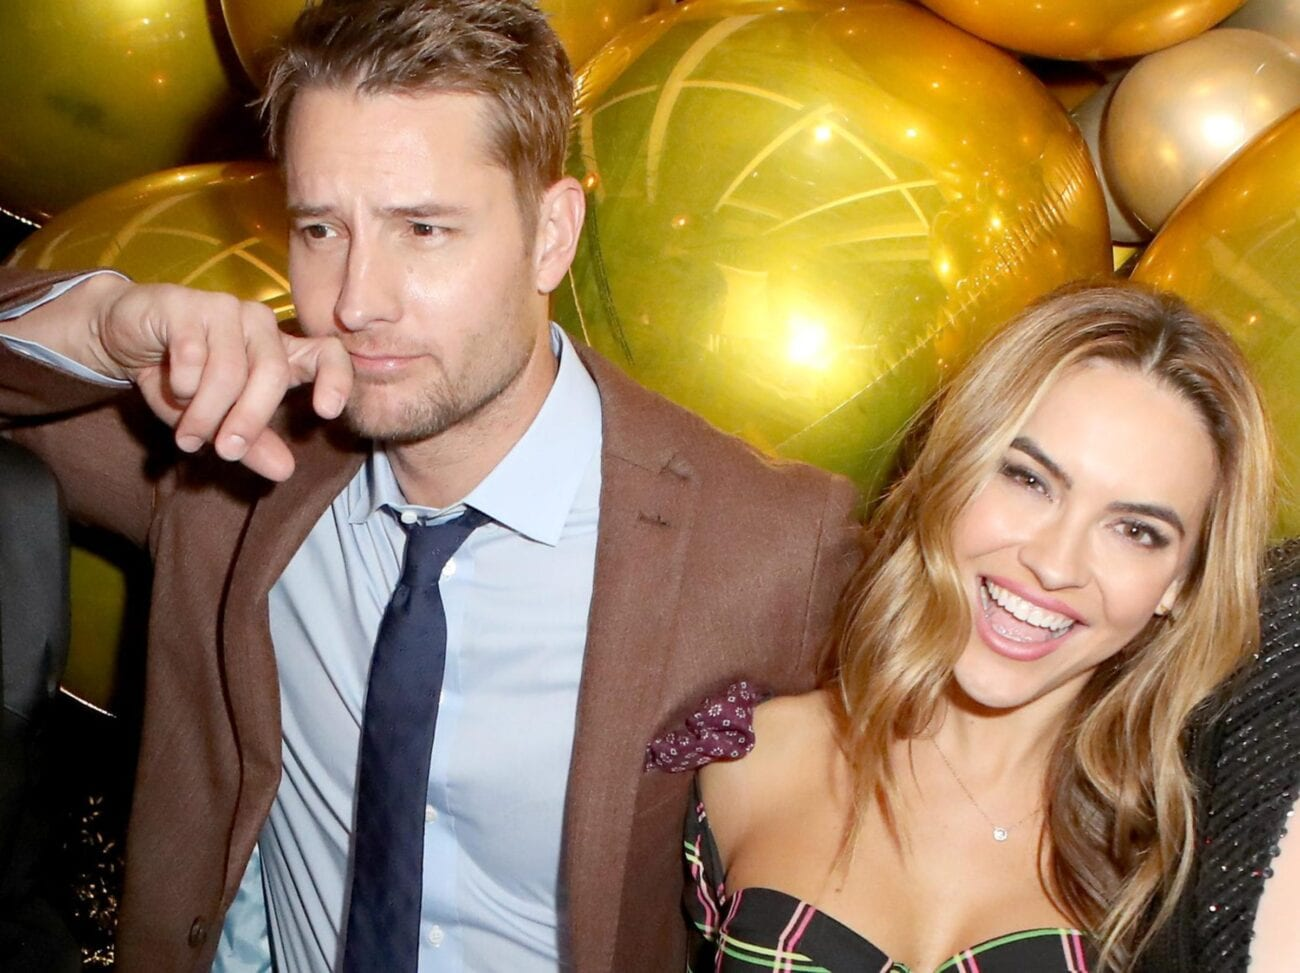 Why in the world is Justin Hartley keeping so quiet about divorcing his wife? Here's what people are thinking.